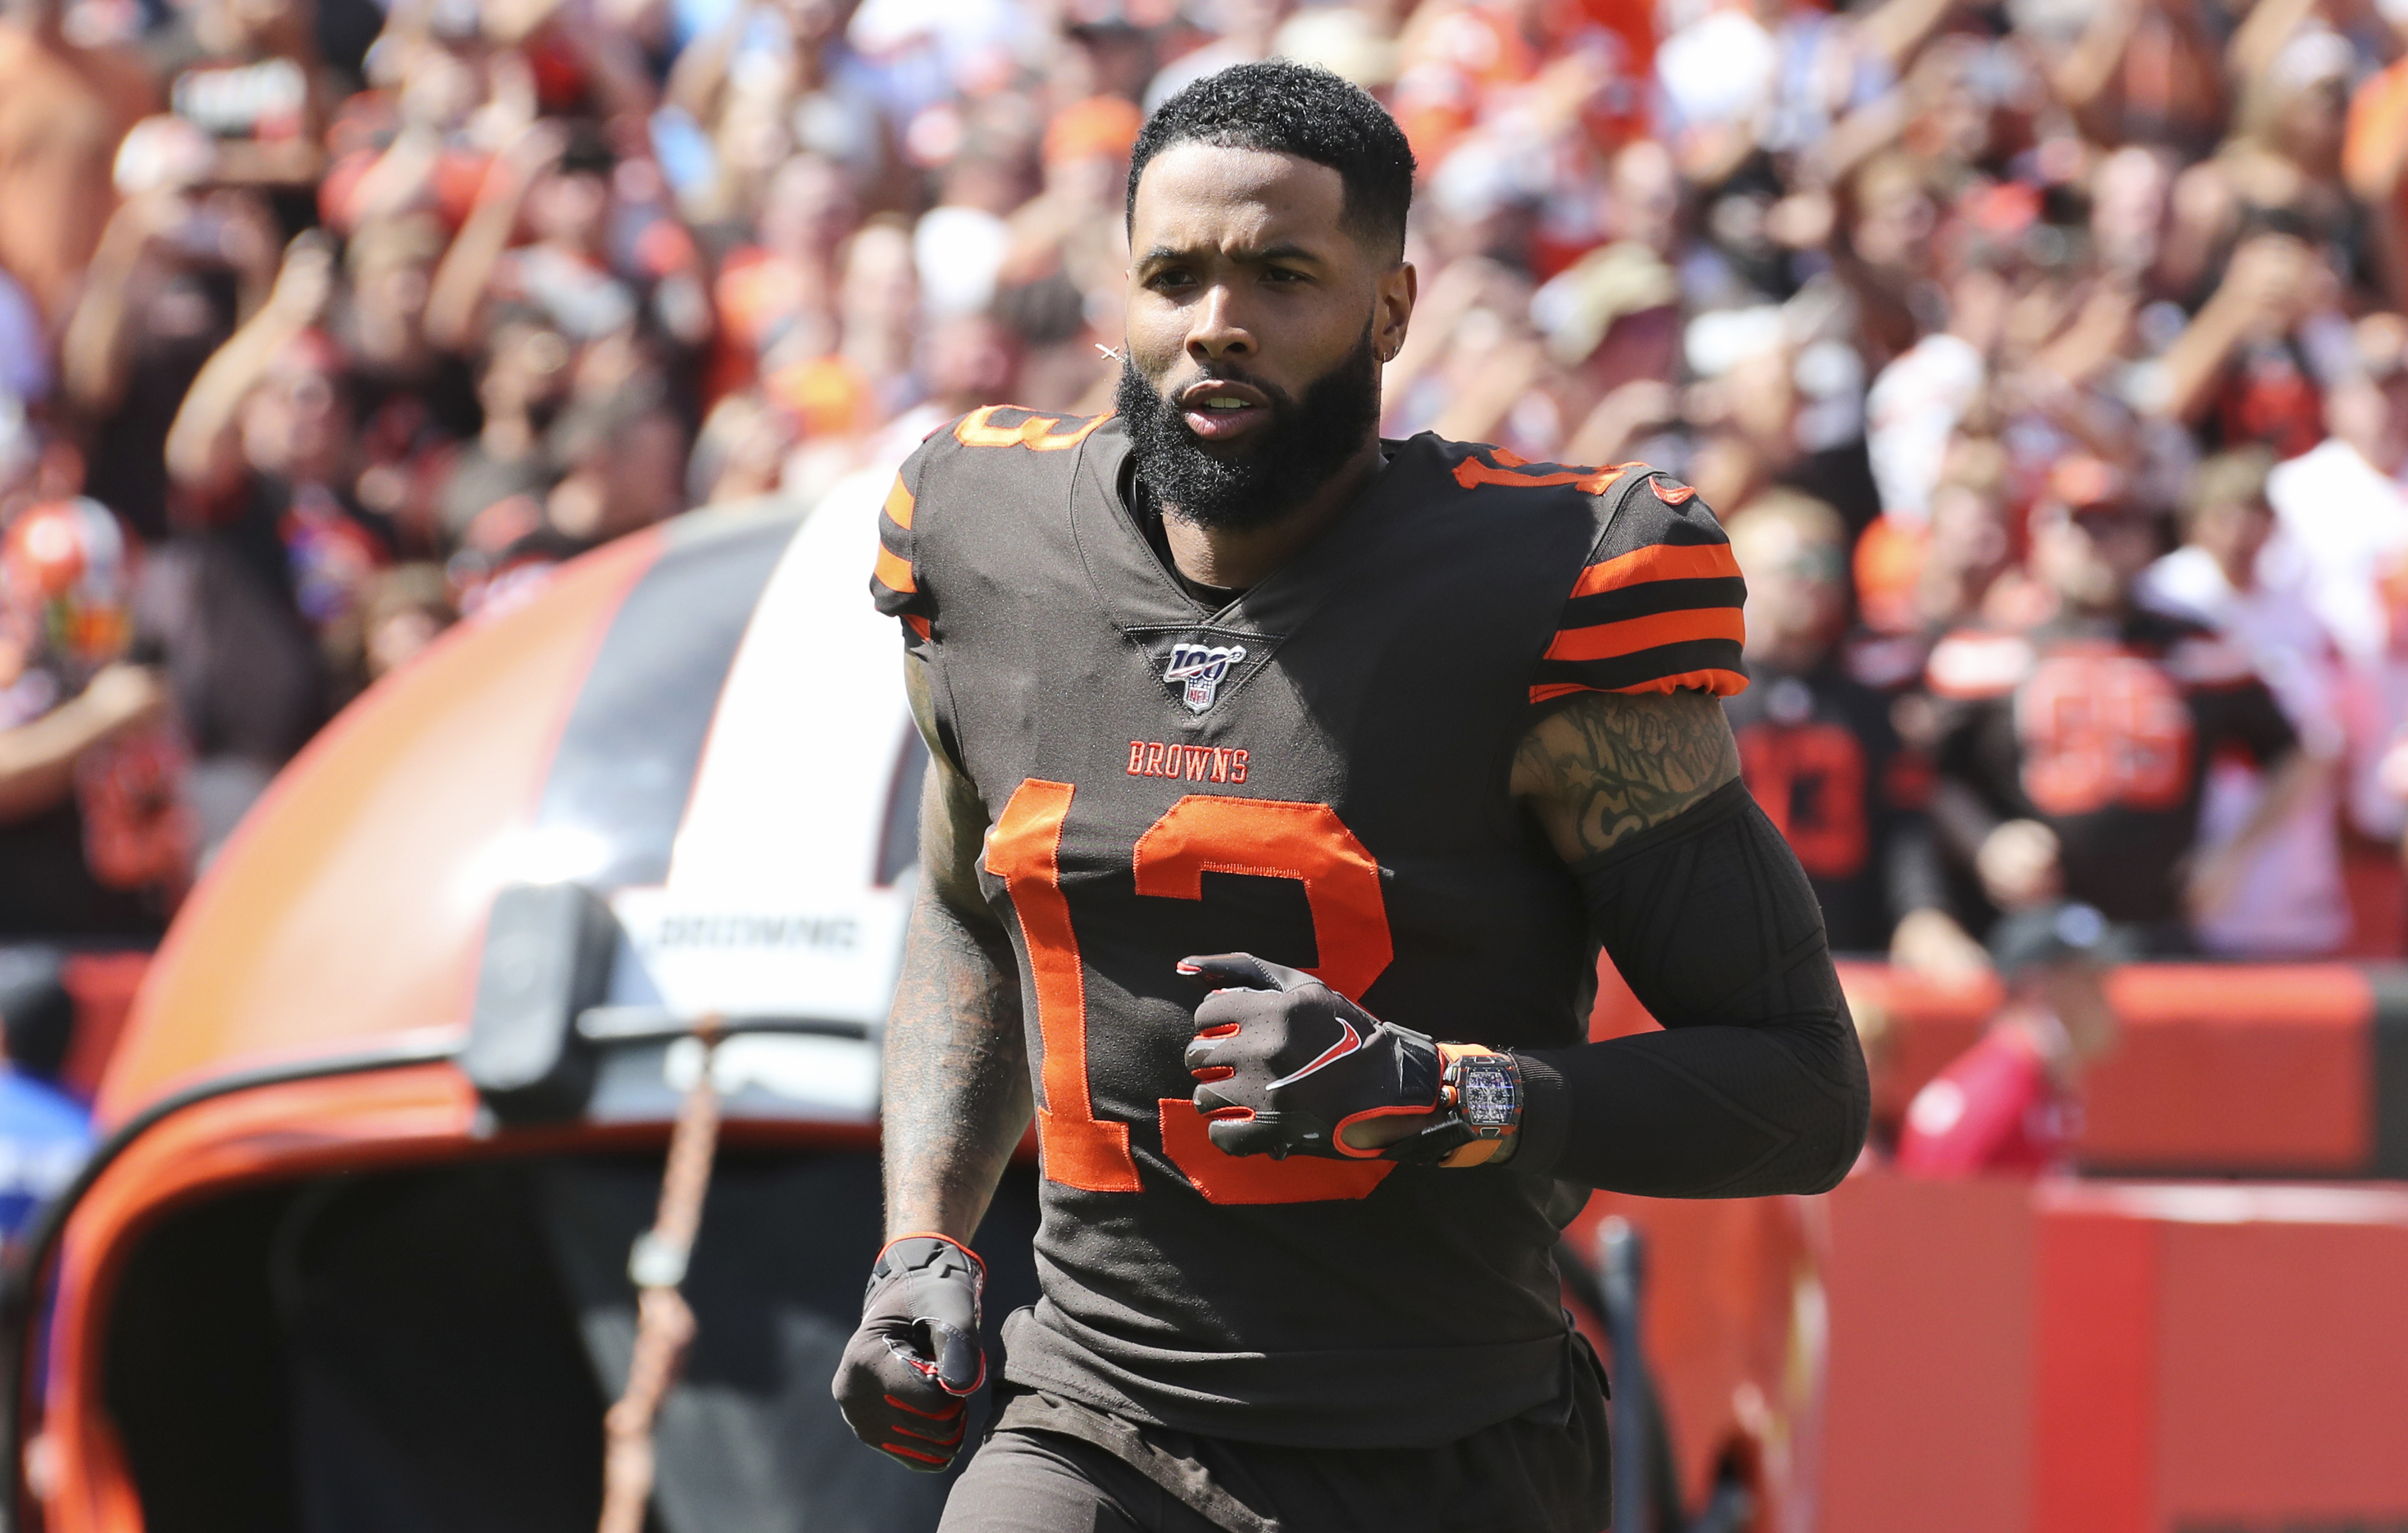 Odell Beckham Jr Plans To Continue Wearing His Richard Mille Watch During Games The Washington Post